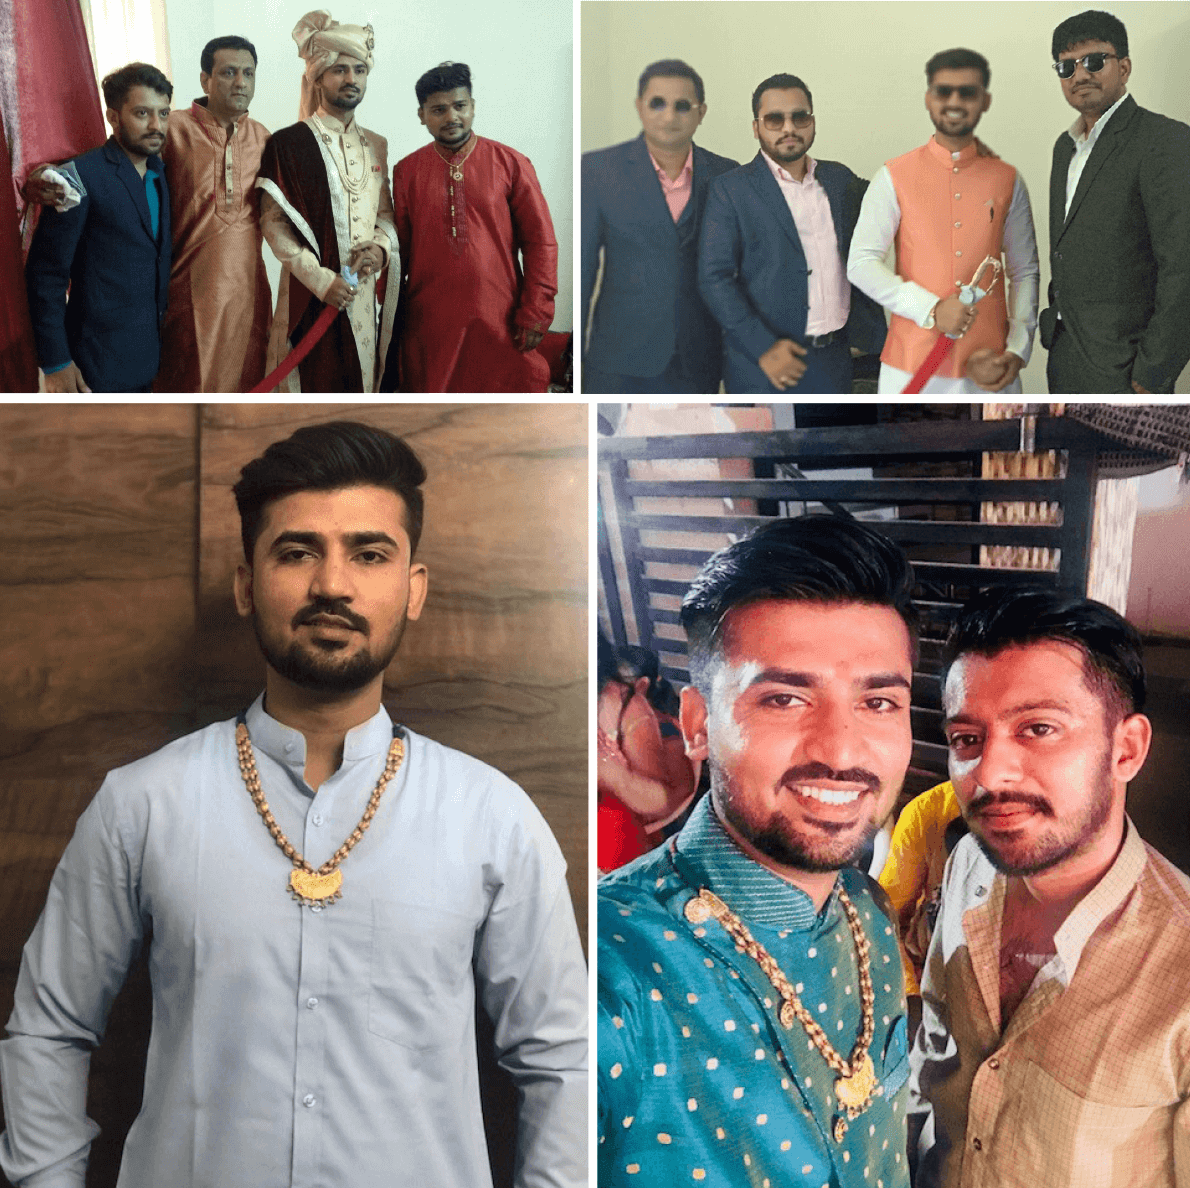 V for Hair and Beauty - Gokuls Wedding